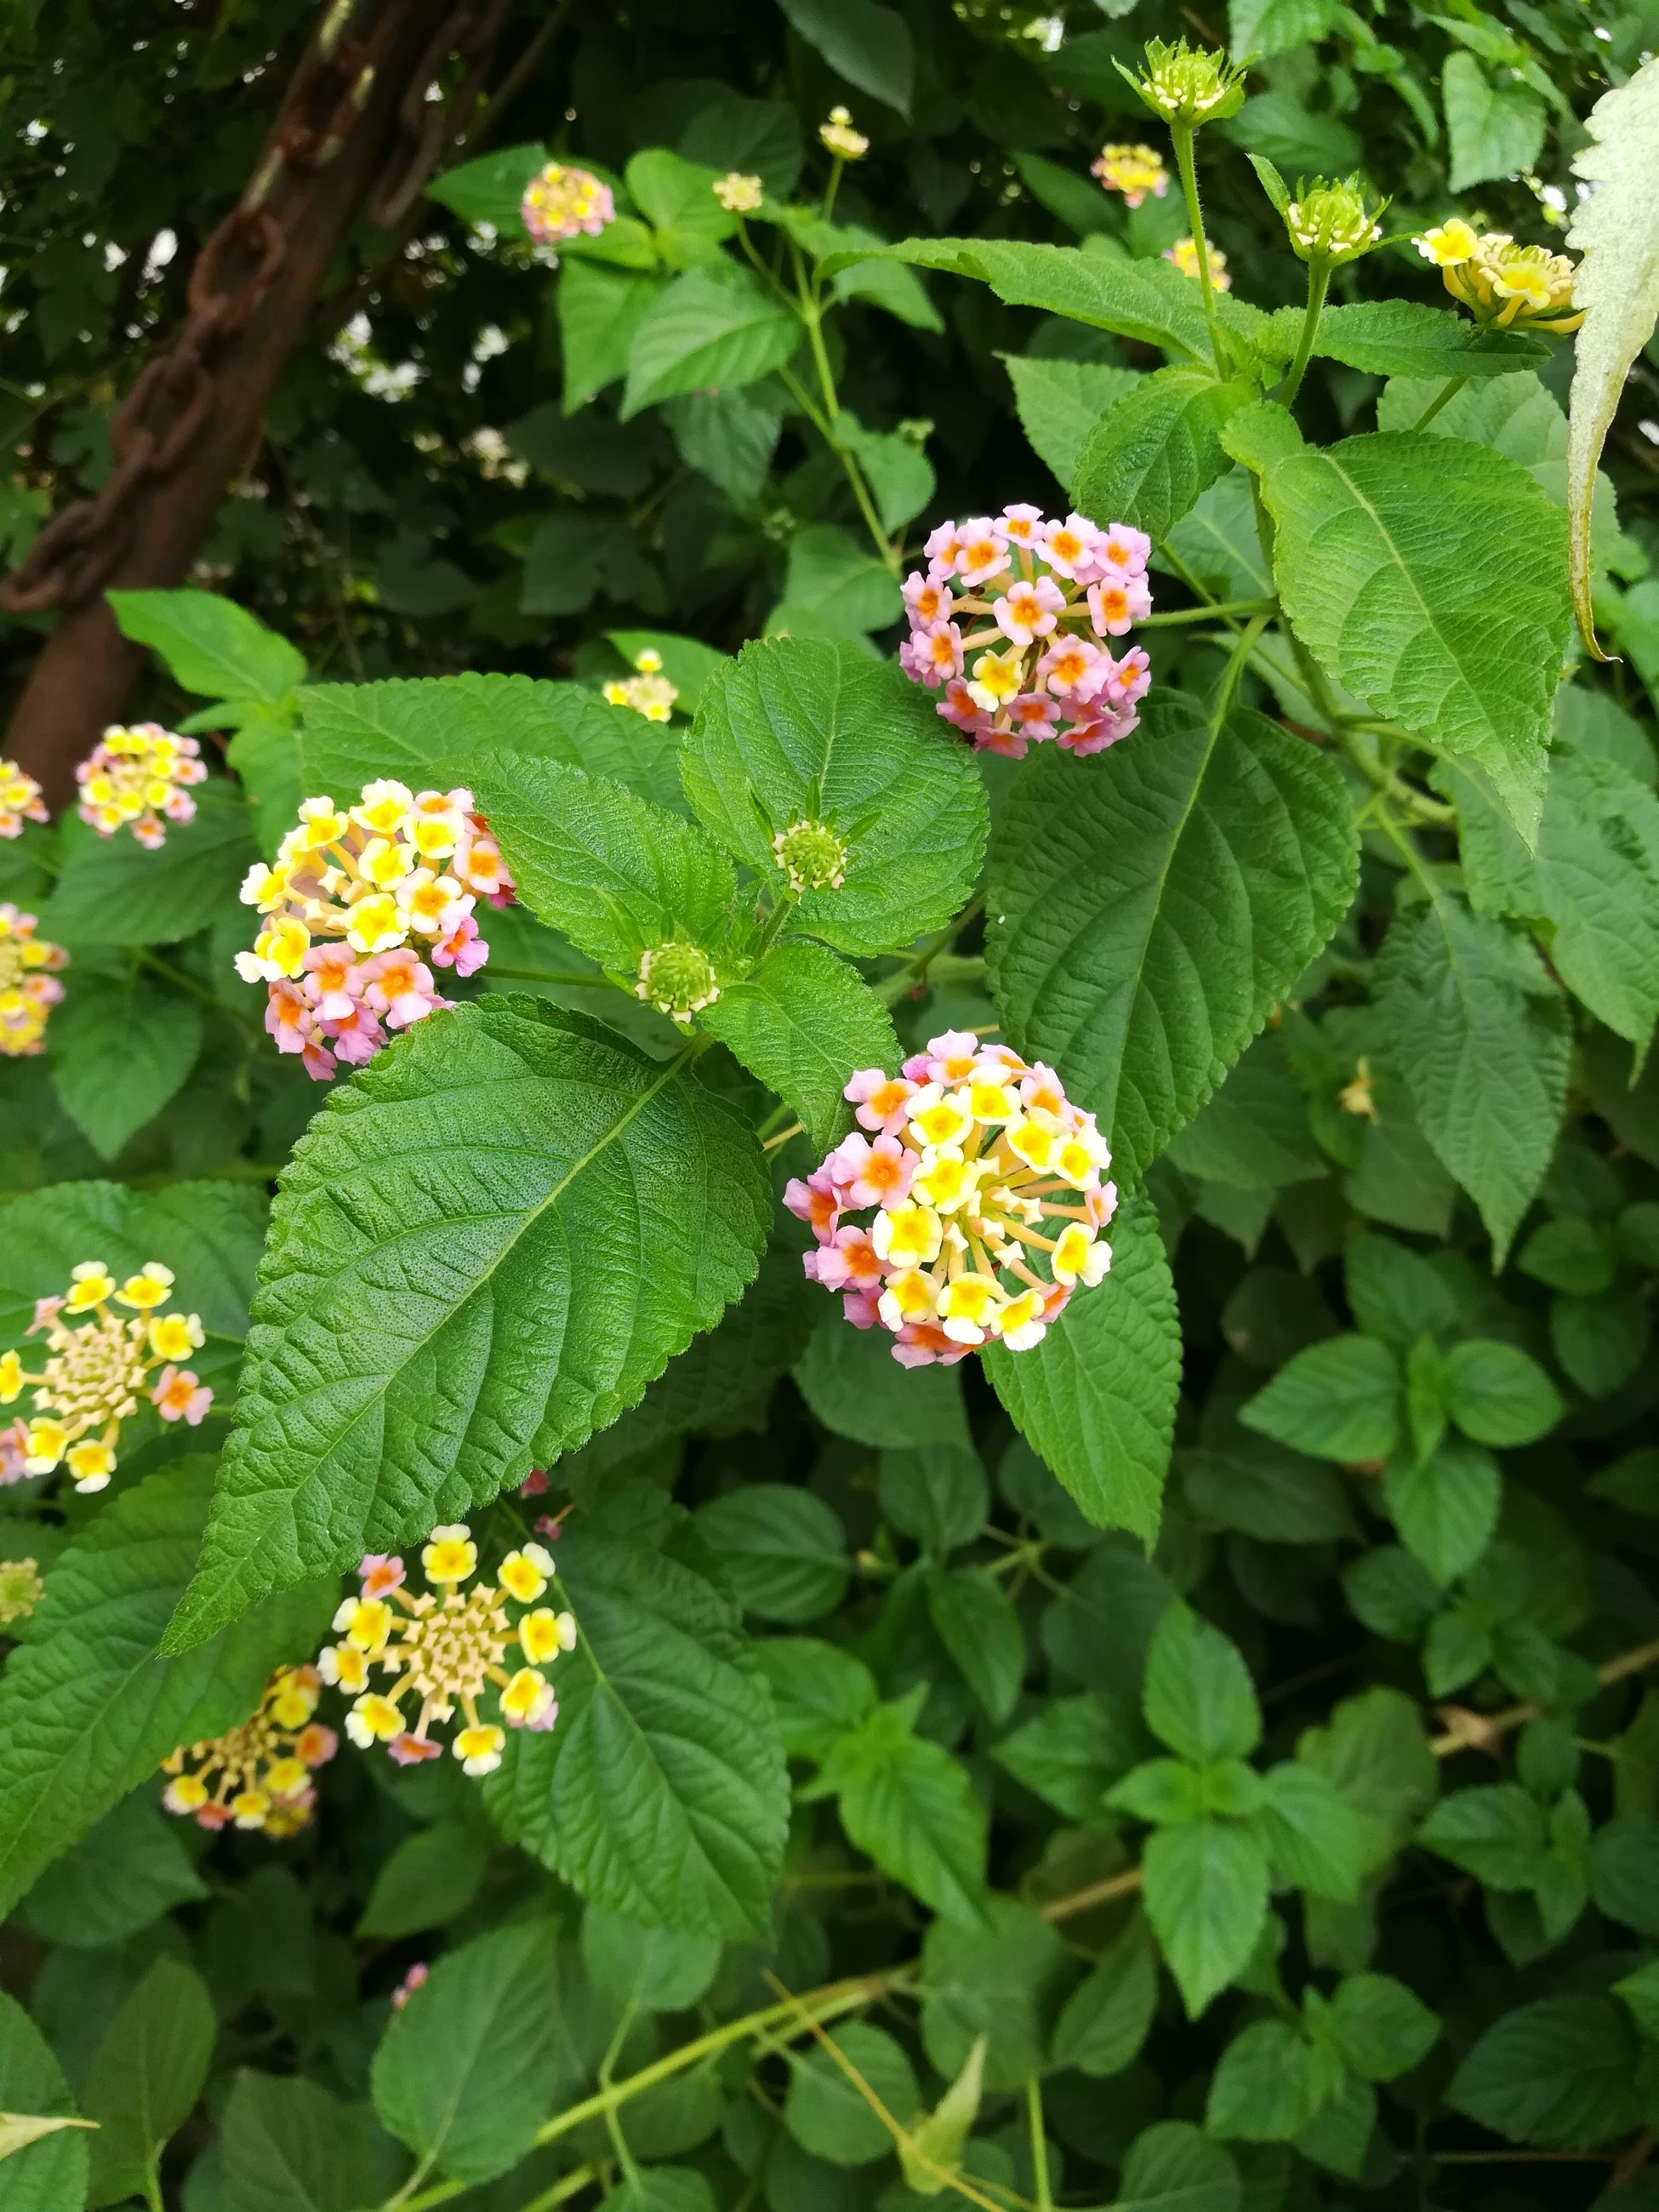 green color, leaf, flower, growth, freshness, fragility, lantana camara, plant, beauty in nature, nature, park - man made space, blooming, no people, flower head, day, outdoors, petal, close-up, zinnia